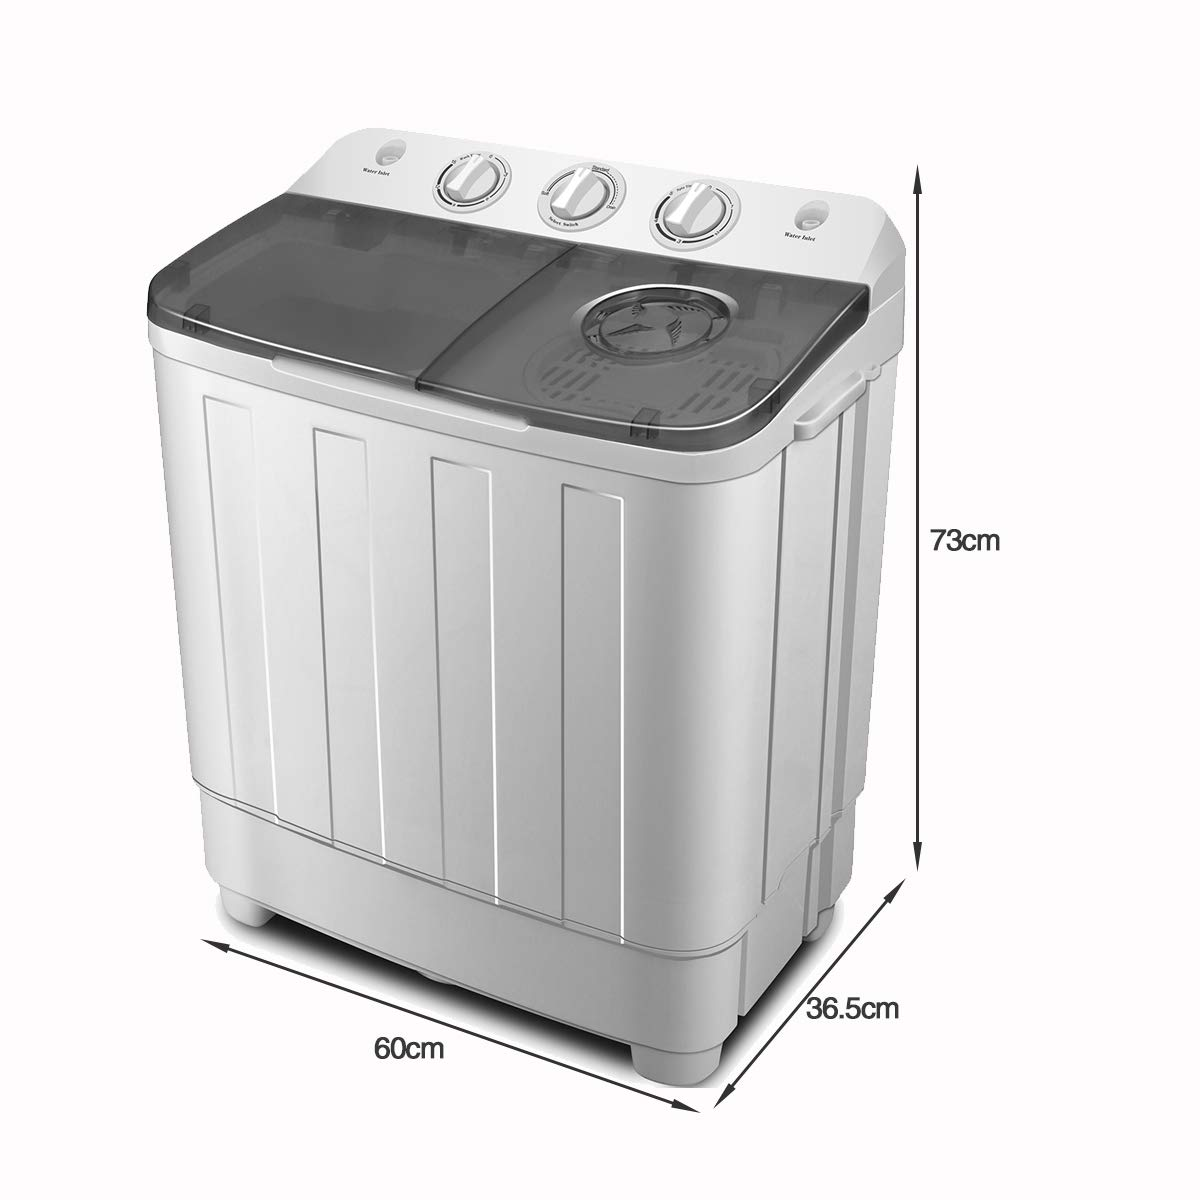 FitnessClub Portable Twin Tub Washing Machine 7. 6 KG Total